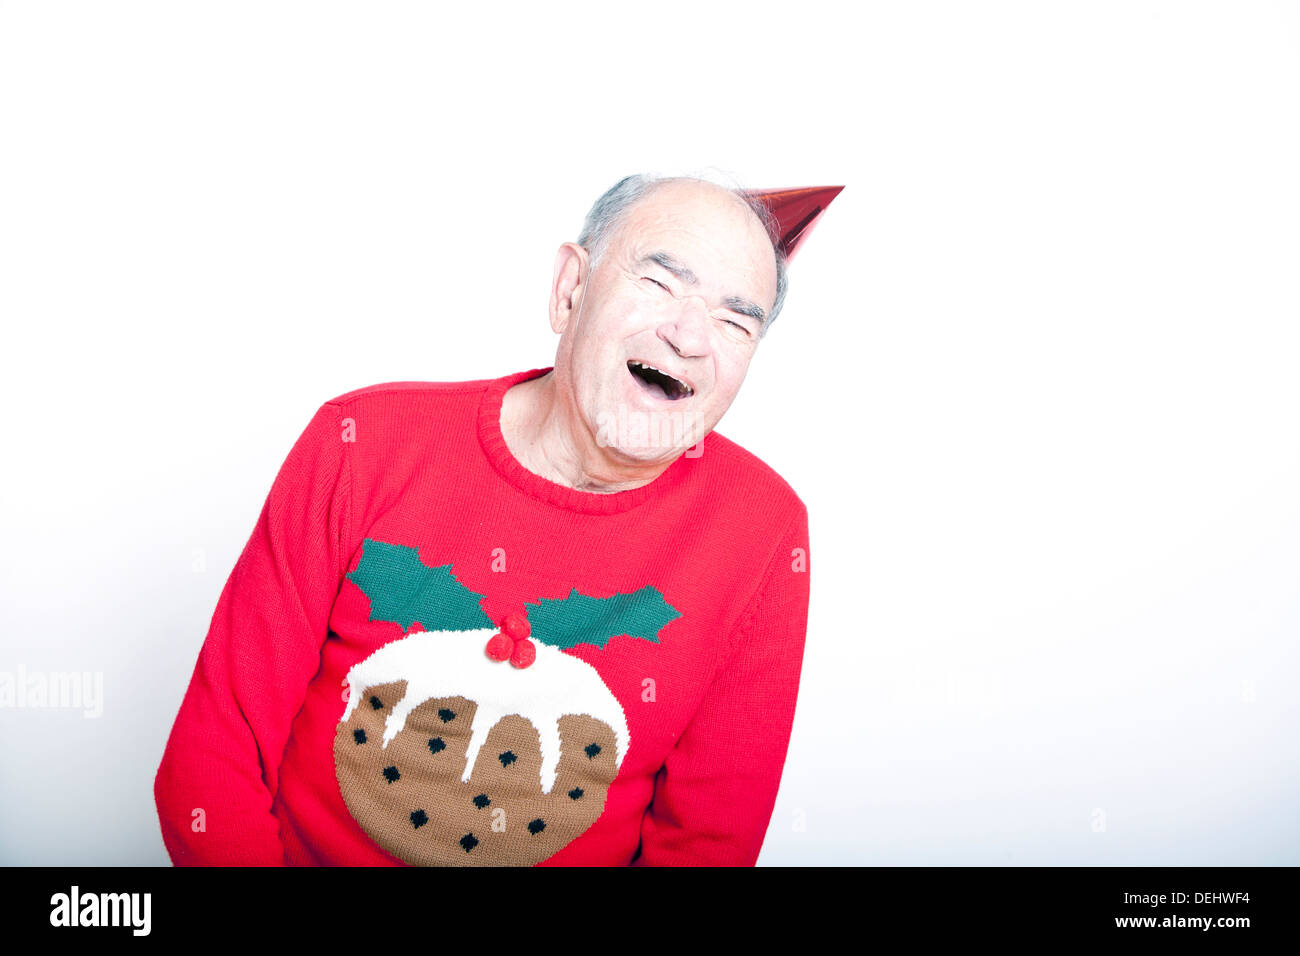 Senior adult man wearing a Christmas jumper a red party hat - Stock Image